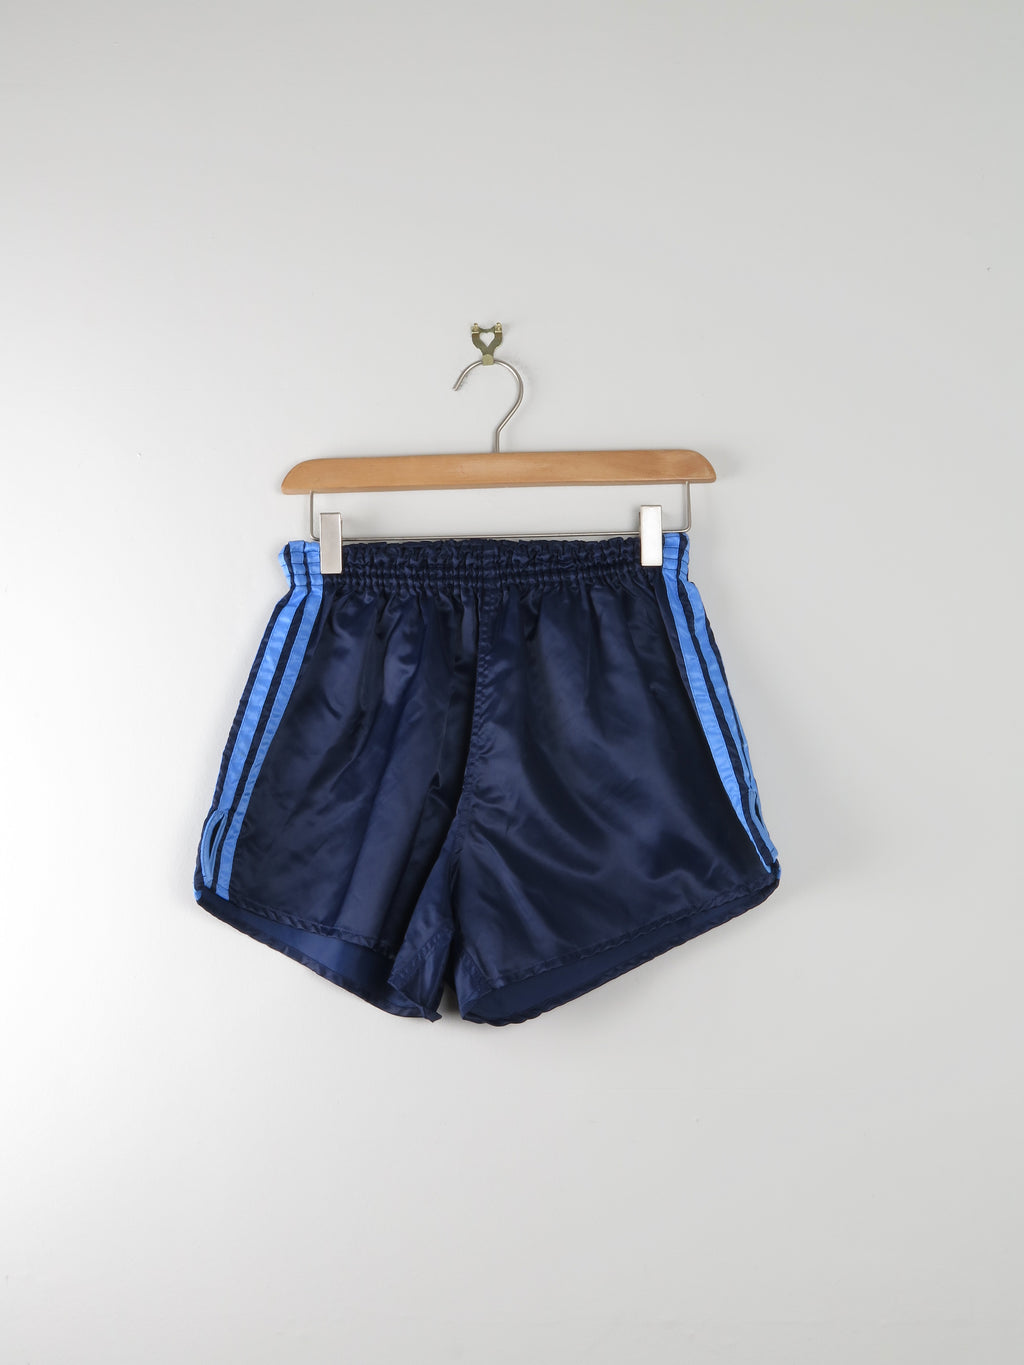 Old School 1970s Shorts Dead Stock M